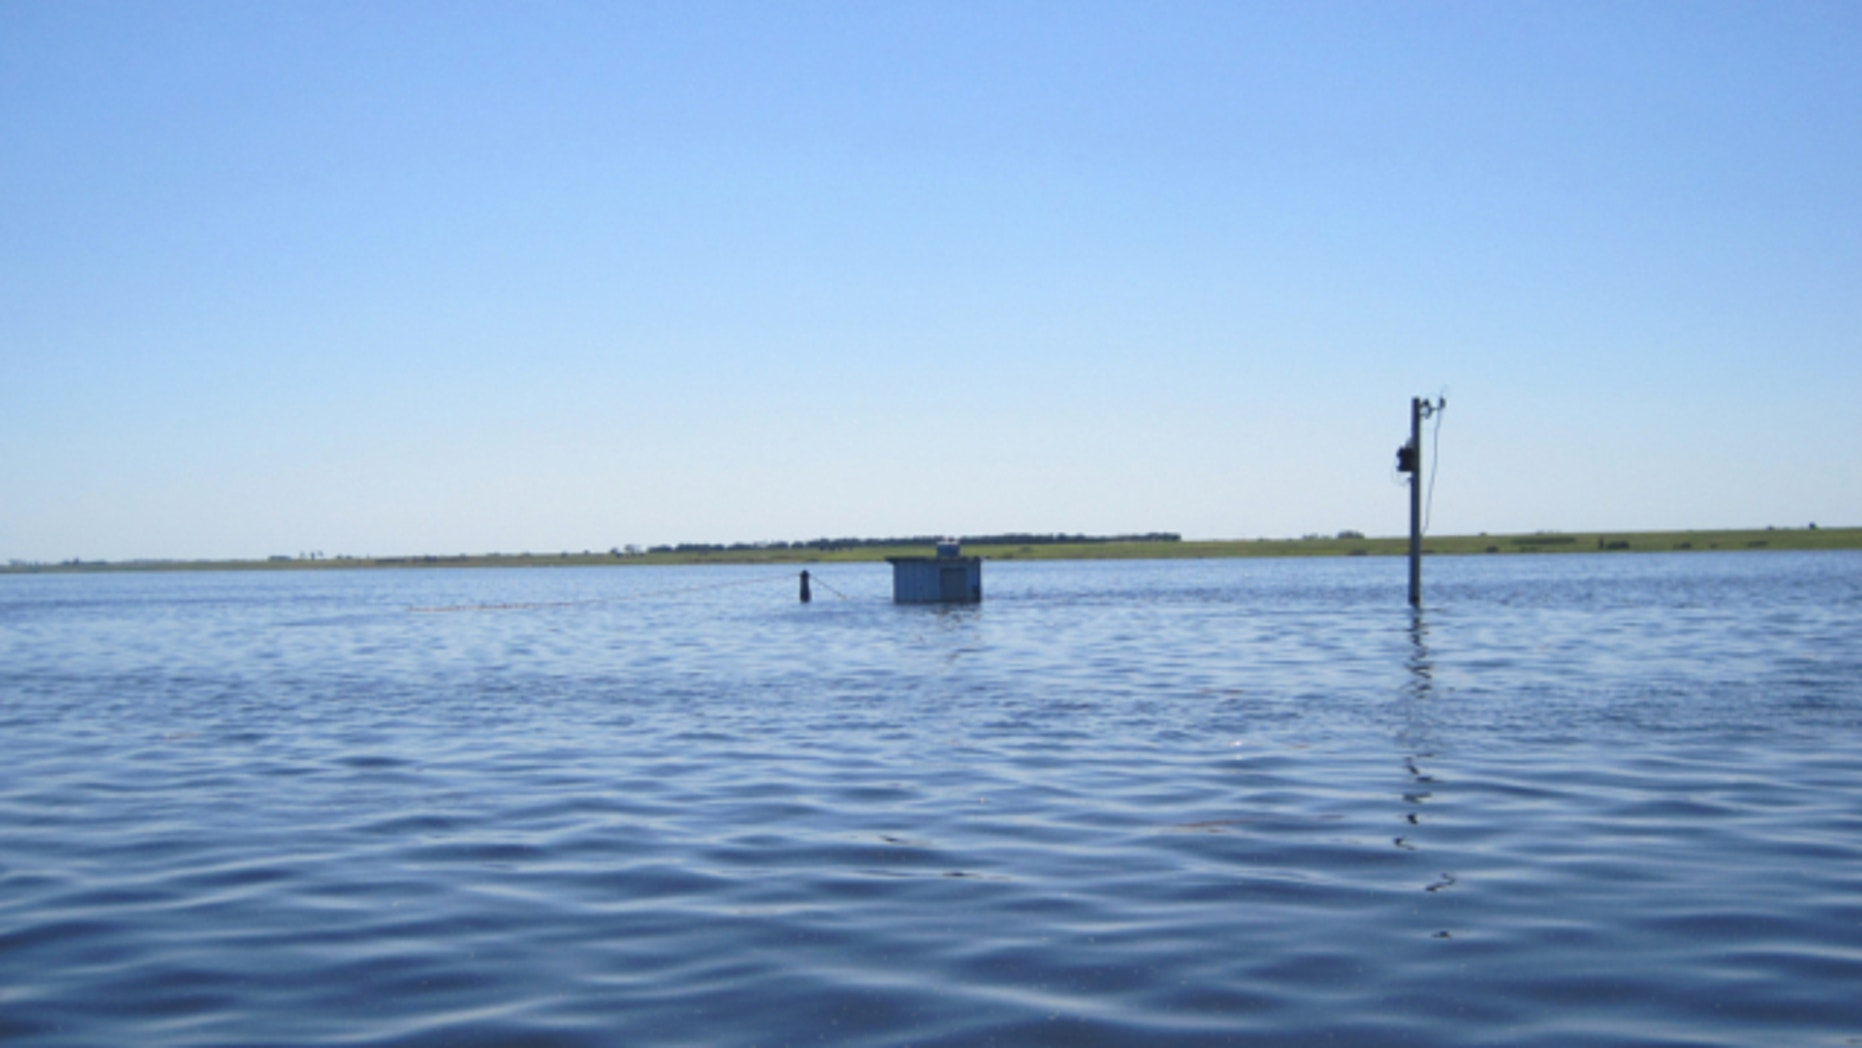 July 5, 2011: This handout photo provided by the US Geological Survery (USGS), taken near Westhope, N.D., shows the Souris River at the peak for the great Souris River flood of 2011, with equipment stored in cooler bolted to roof of gage house because water level was above gage house shelf.